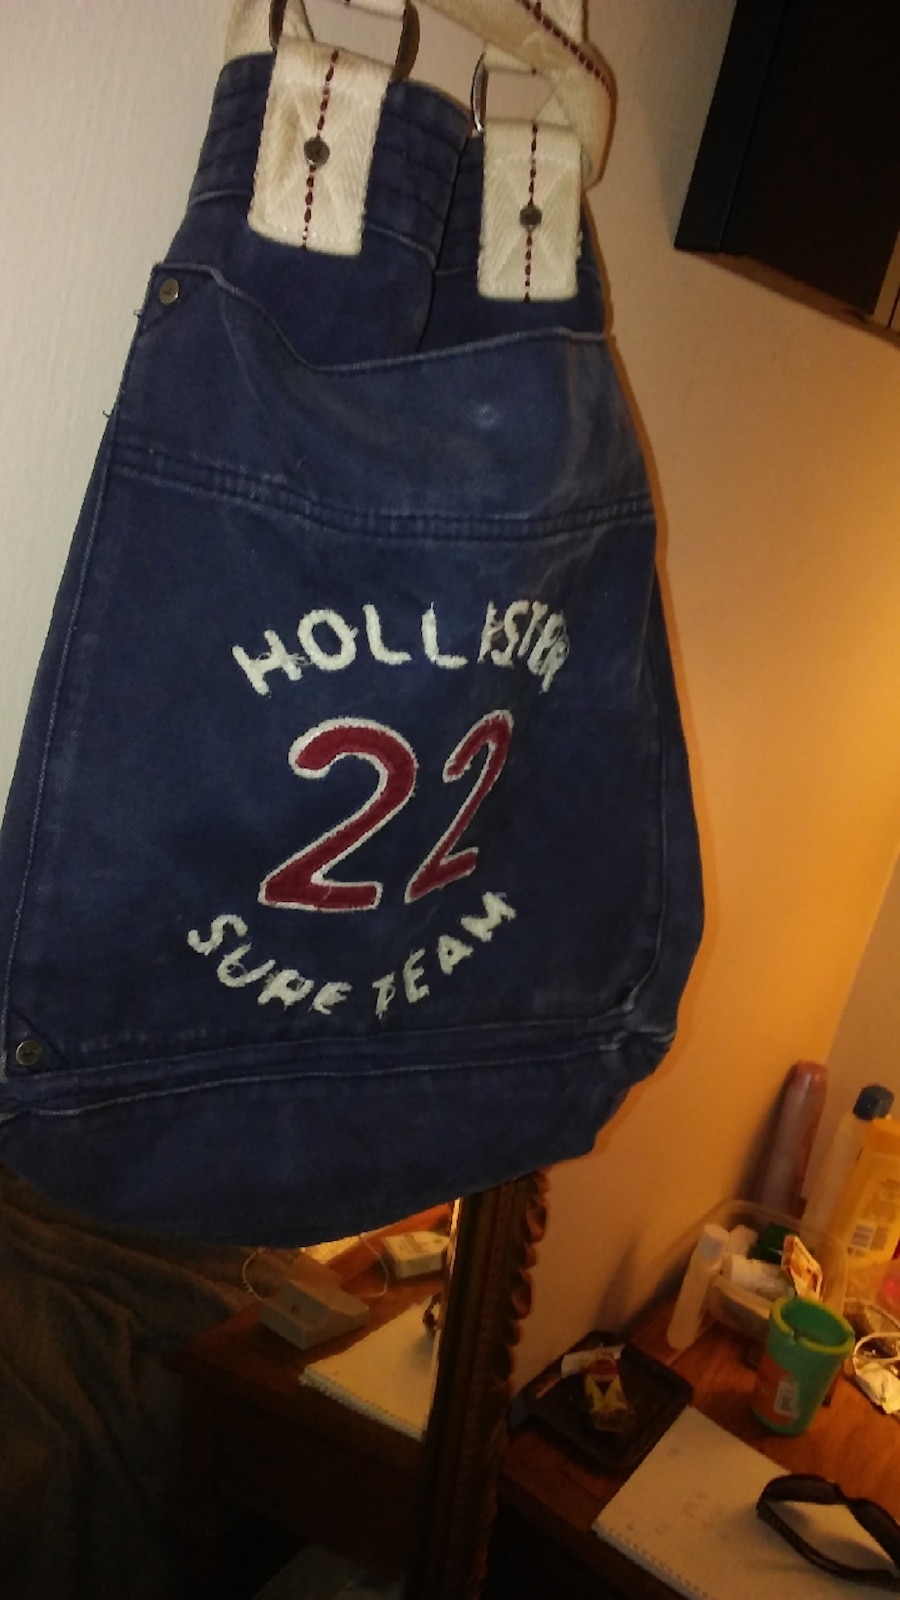 Hollister beach bag - Chattanooga